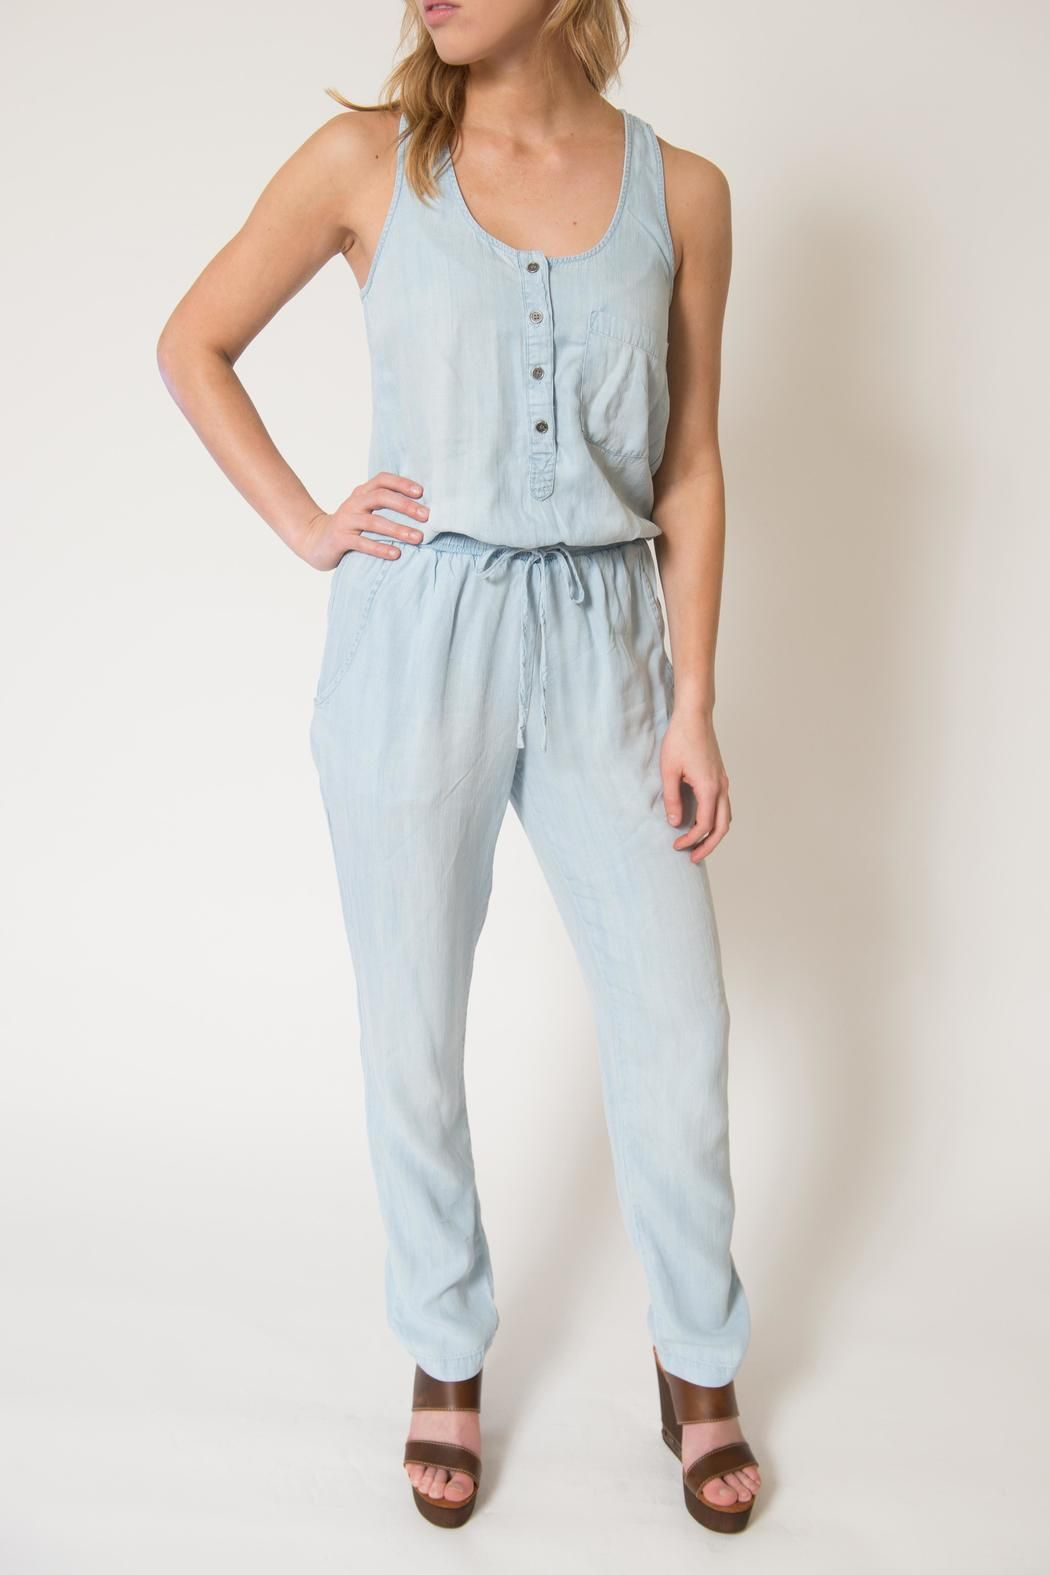 fbc499750883 A fun woven denim jumpsuit that is just lightweight enough to pair with a  kimono or even worn alone for a beach vacation! Woven Denim Jumpsuit by RD  Style.